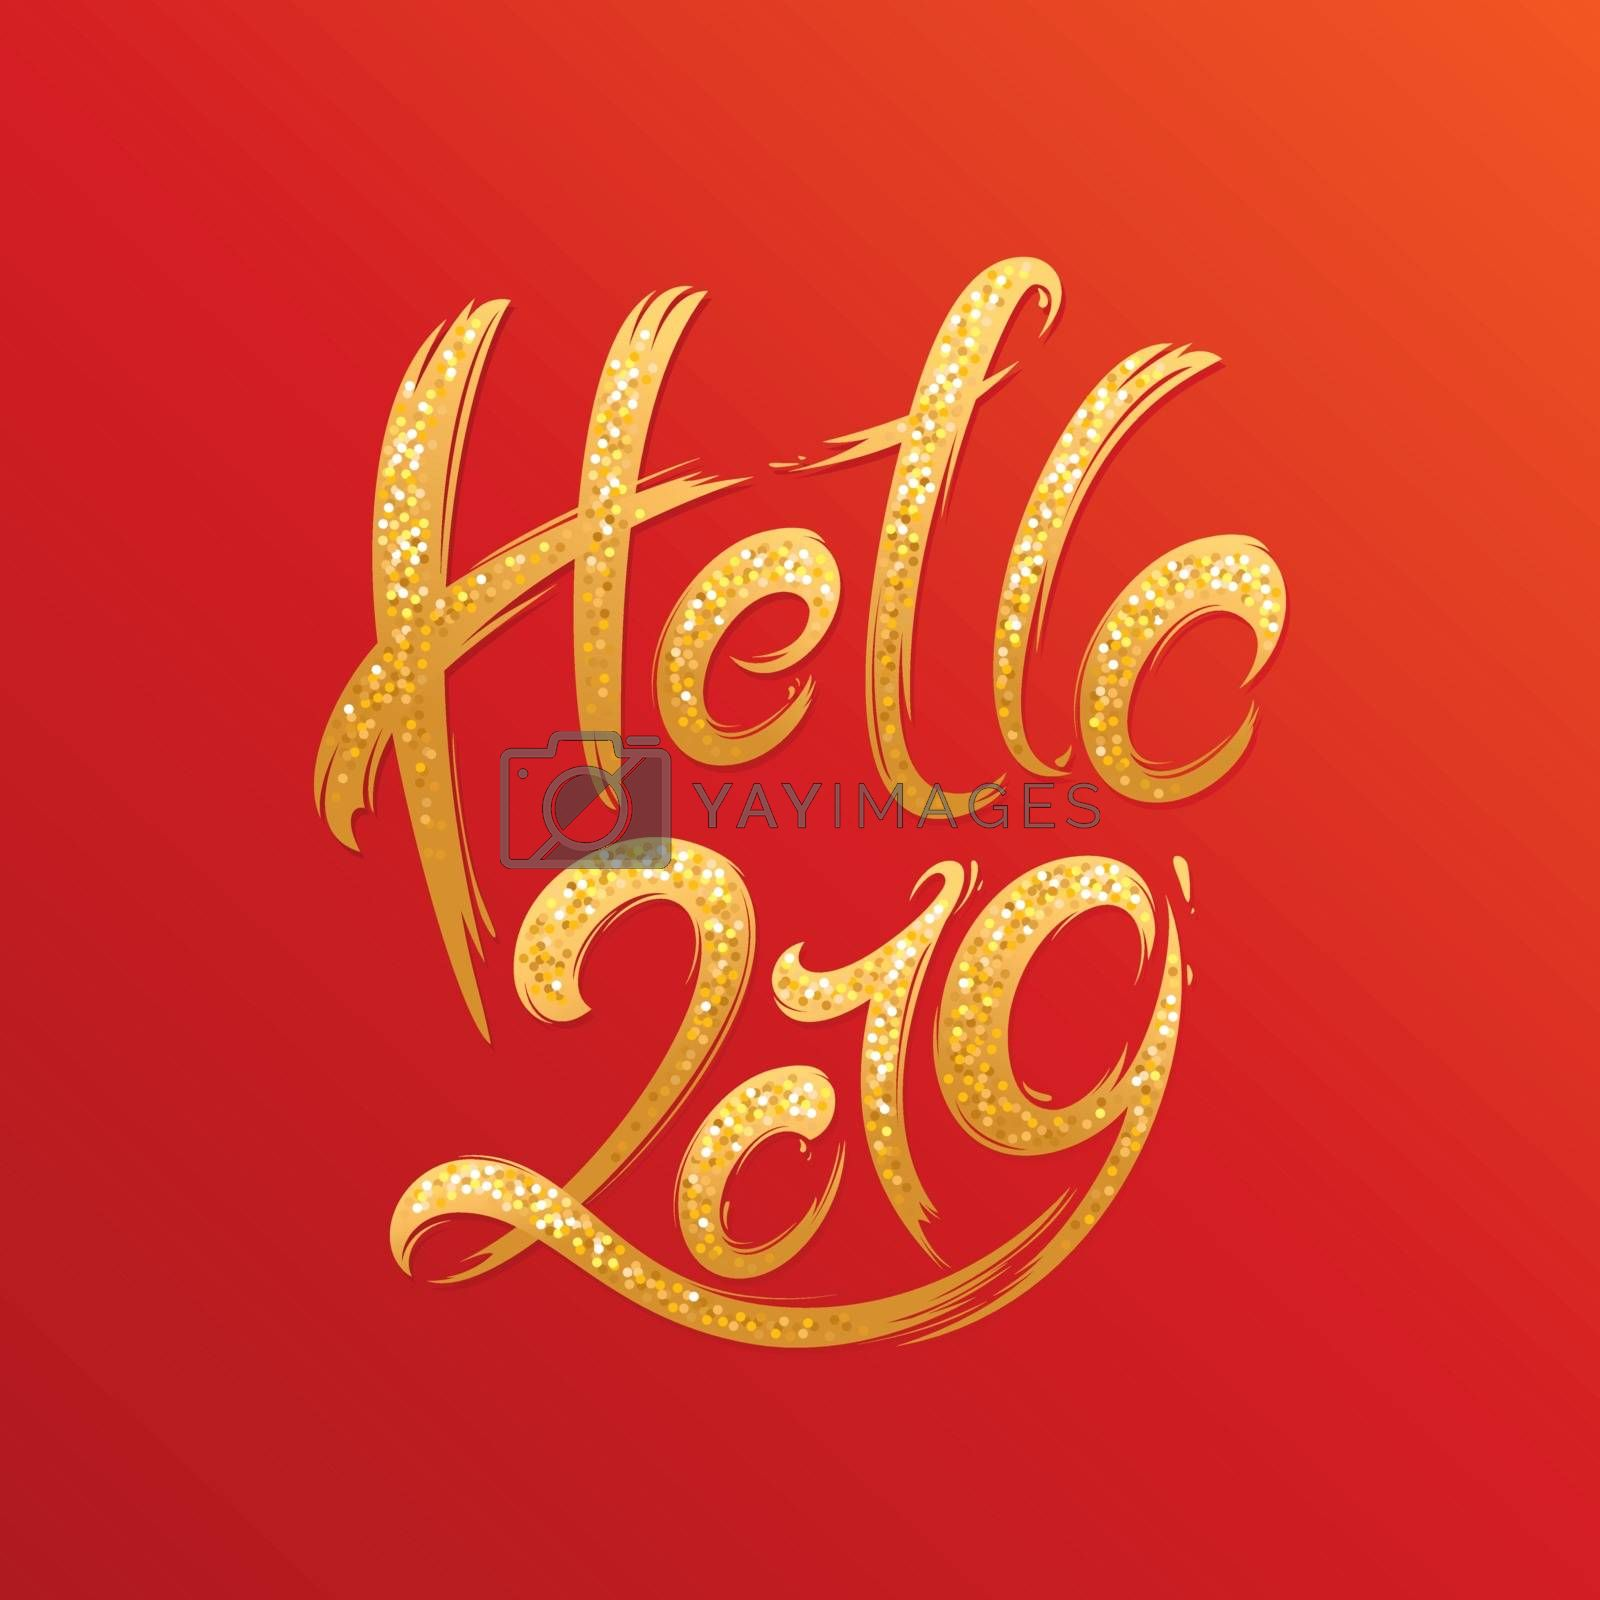 2019 New Year handwritten shimmering lettering greeting card. Hand drawn vector illustration